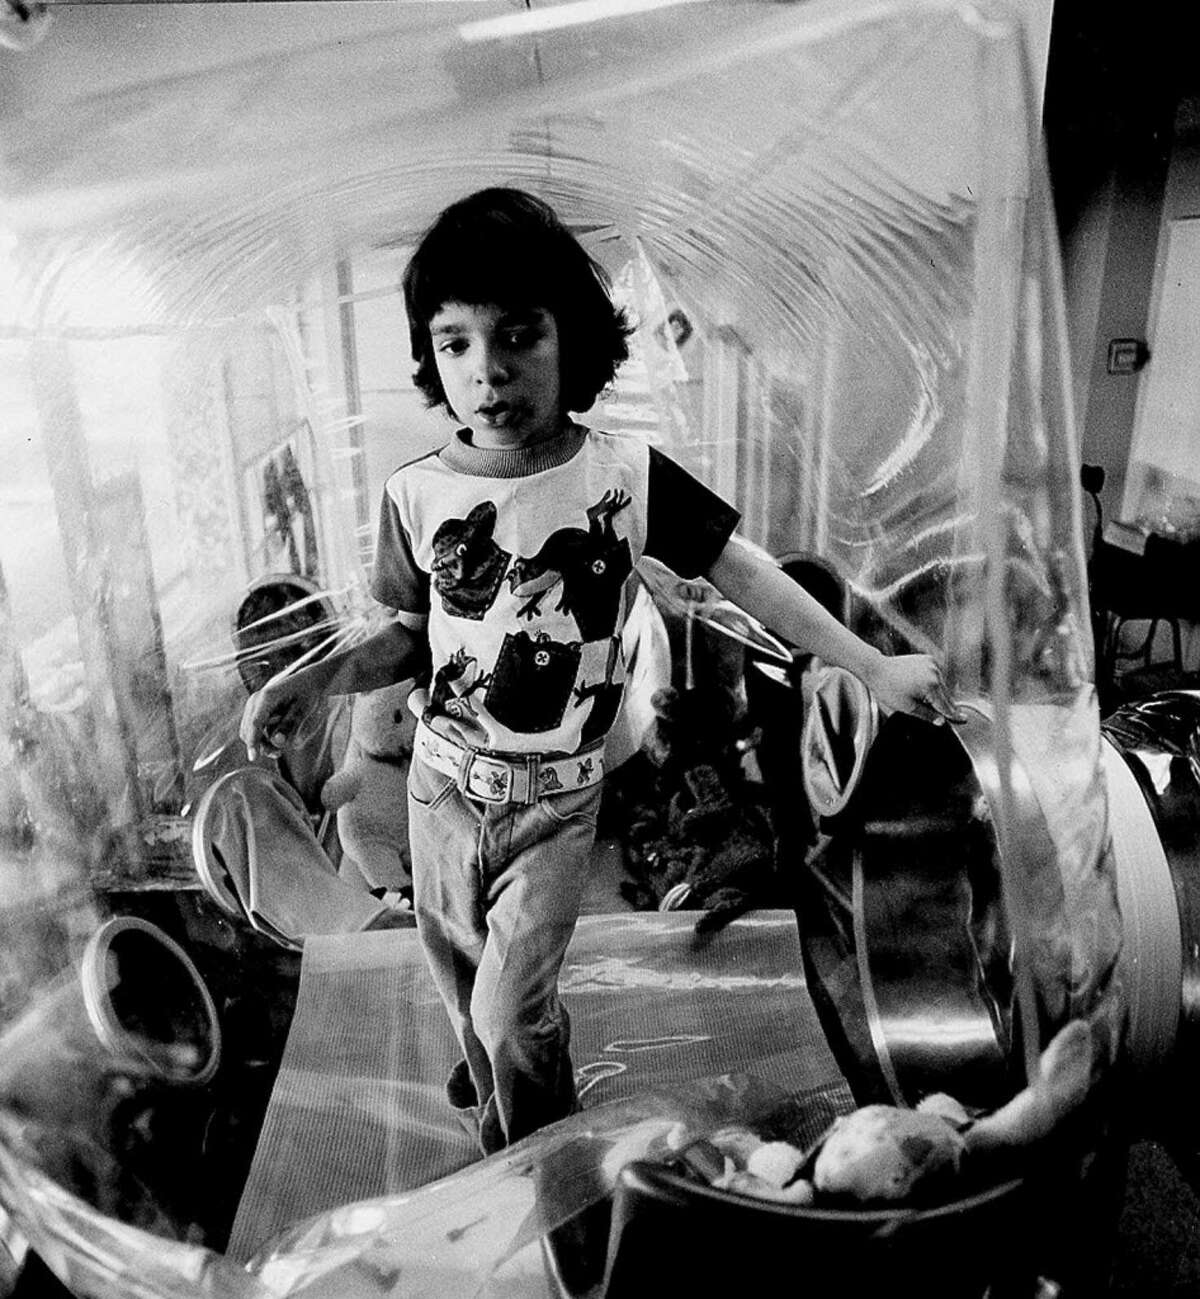 """The saga of David Vetter, Houston's """"Bubble Boy,"""" paved the way for others."""